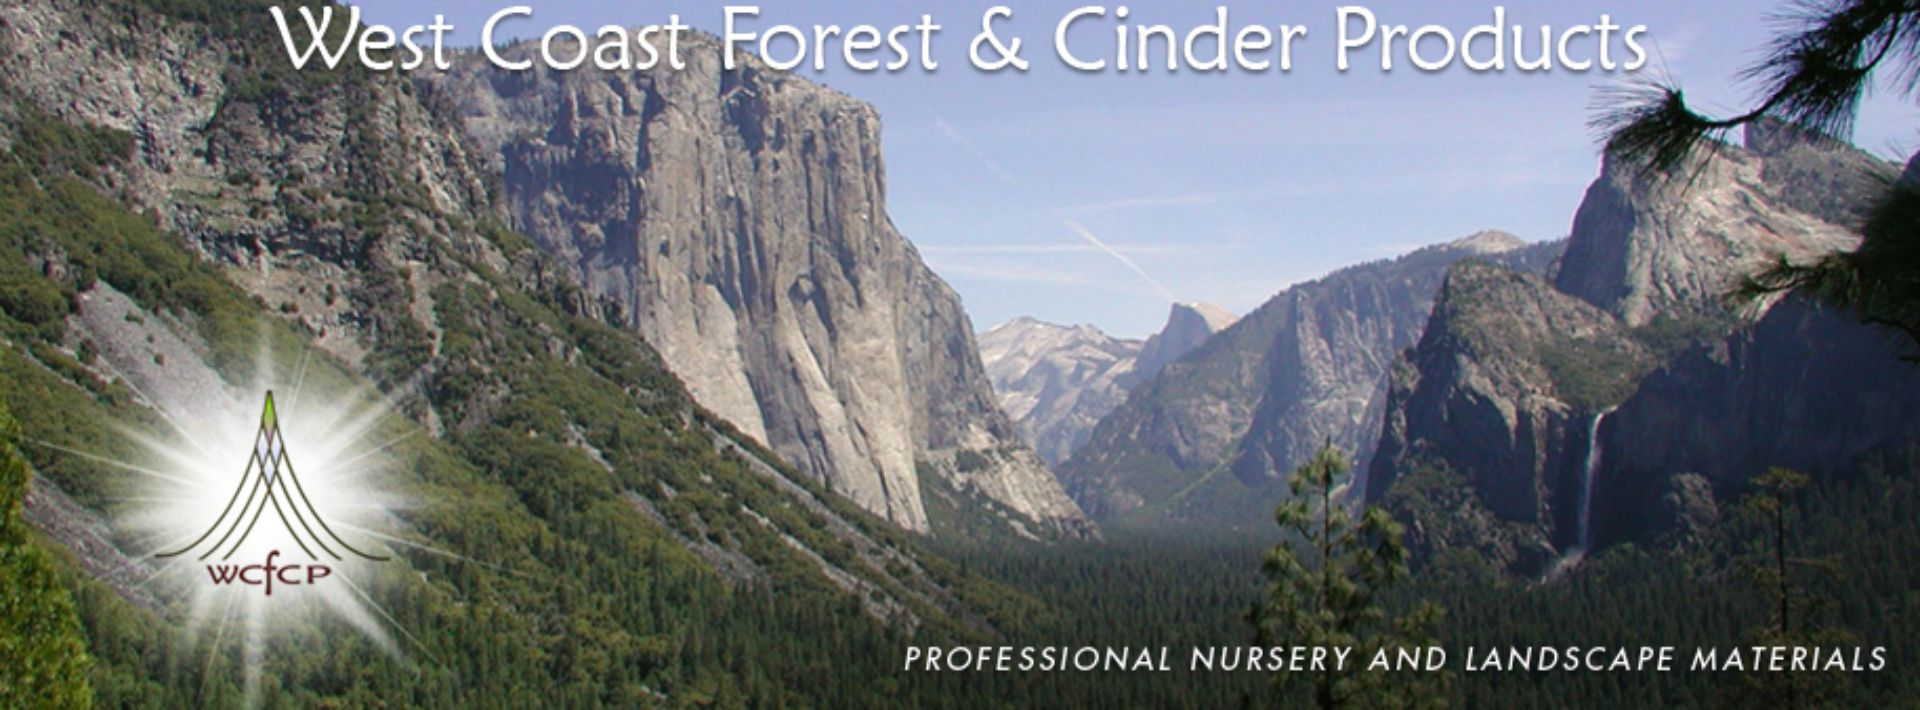 West Coast Forest & Cinder Products